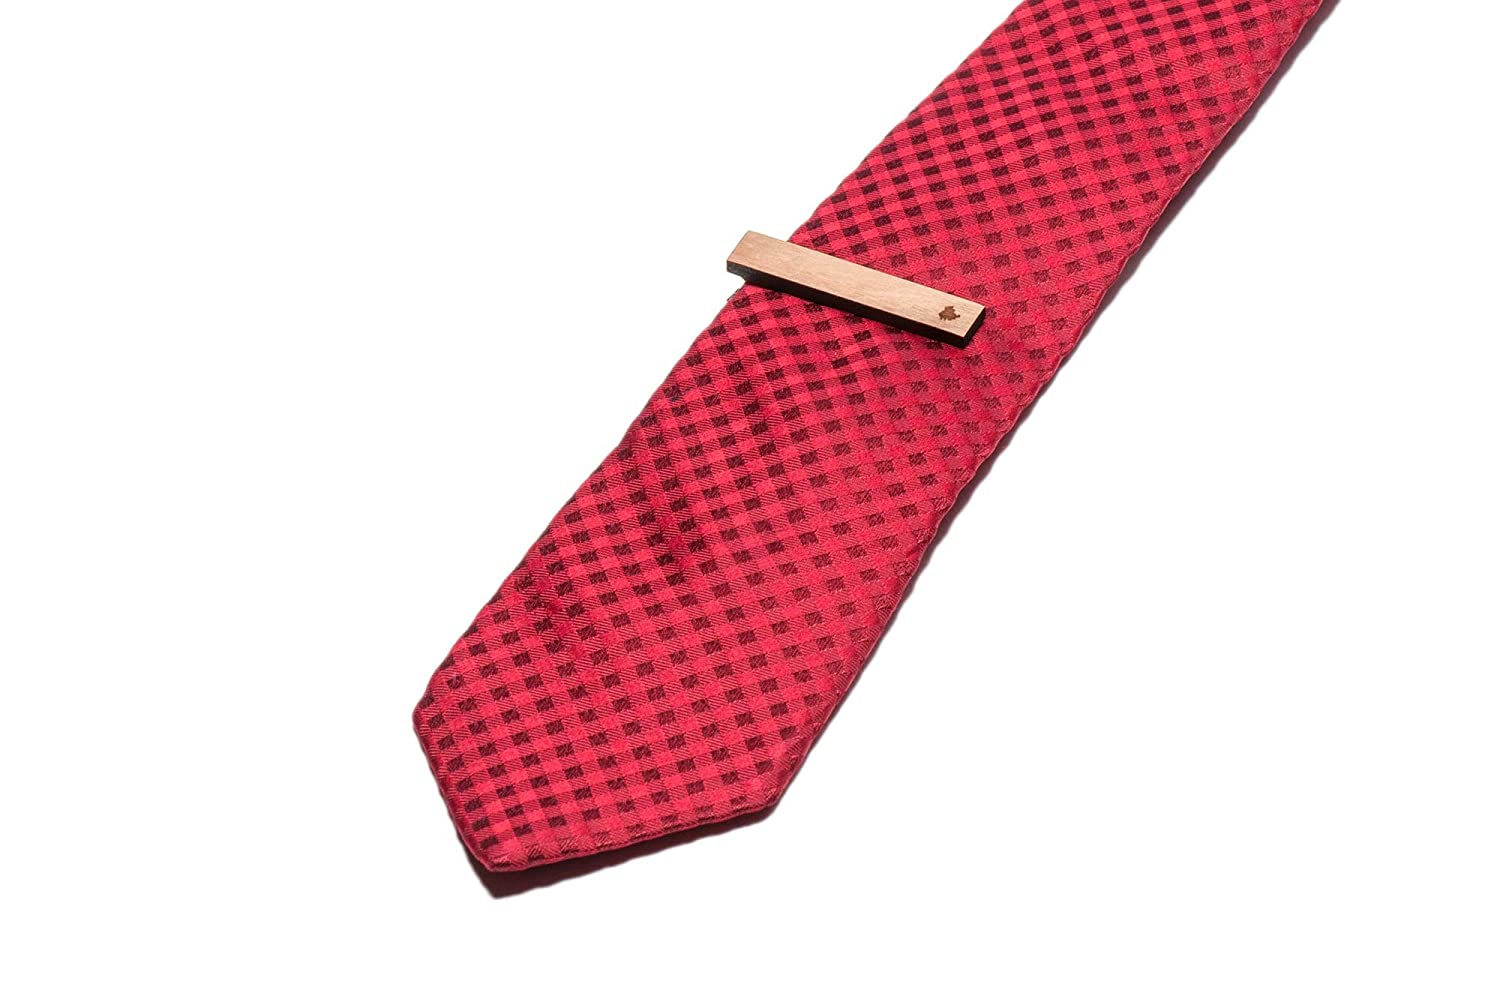 Cherry Wood Tie Bar Engraved in The USA Wooden Accessories Company Wooden Tie Clips with Laser Engraved Thuringia Design